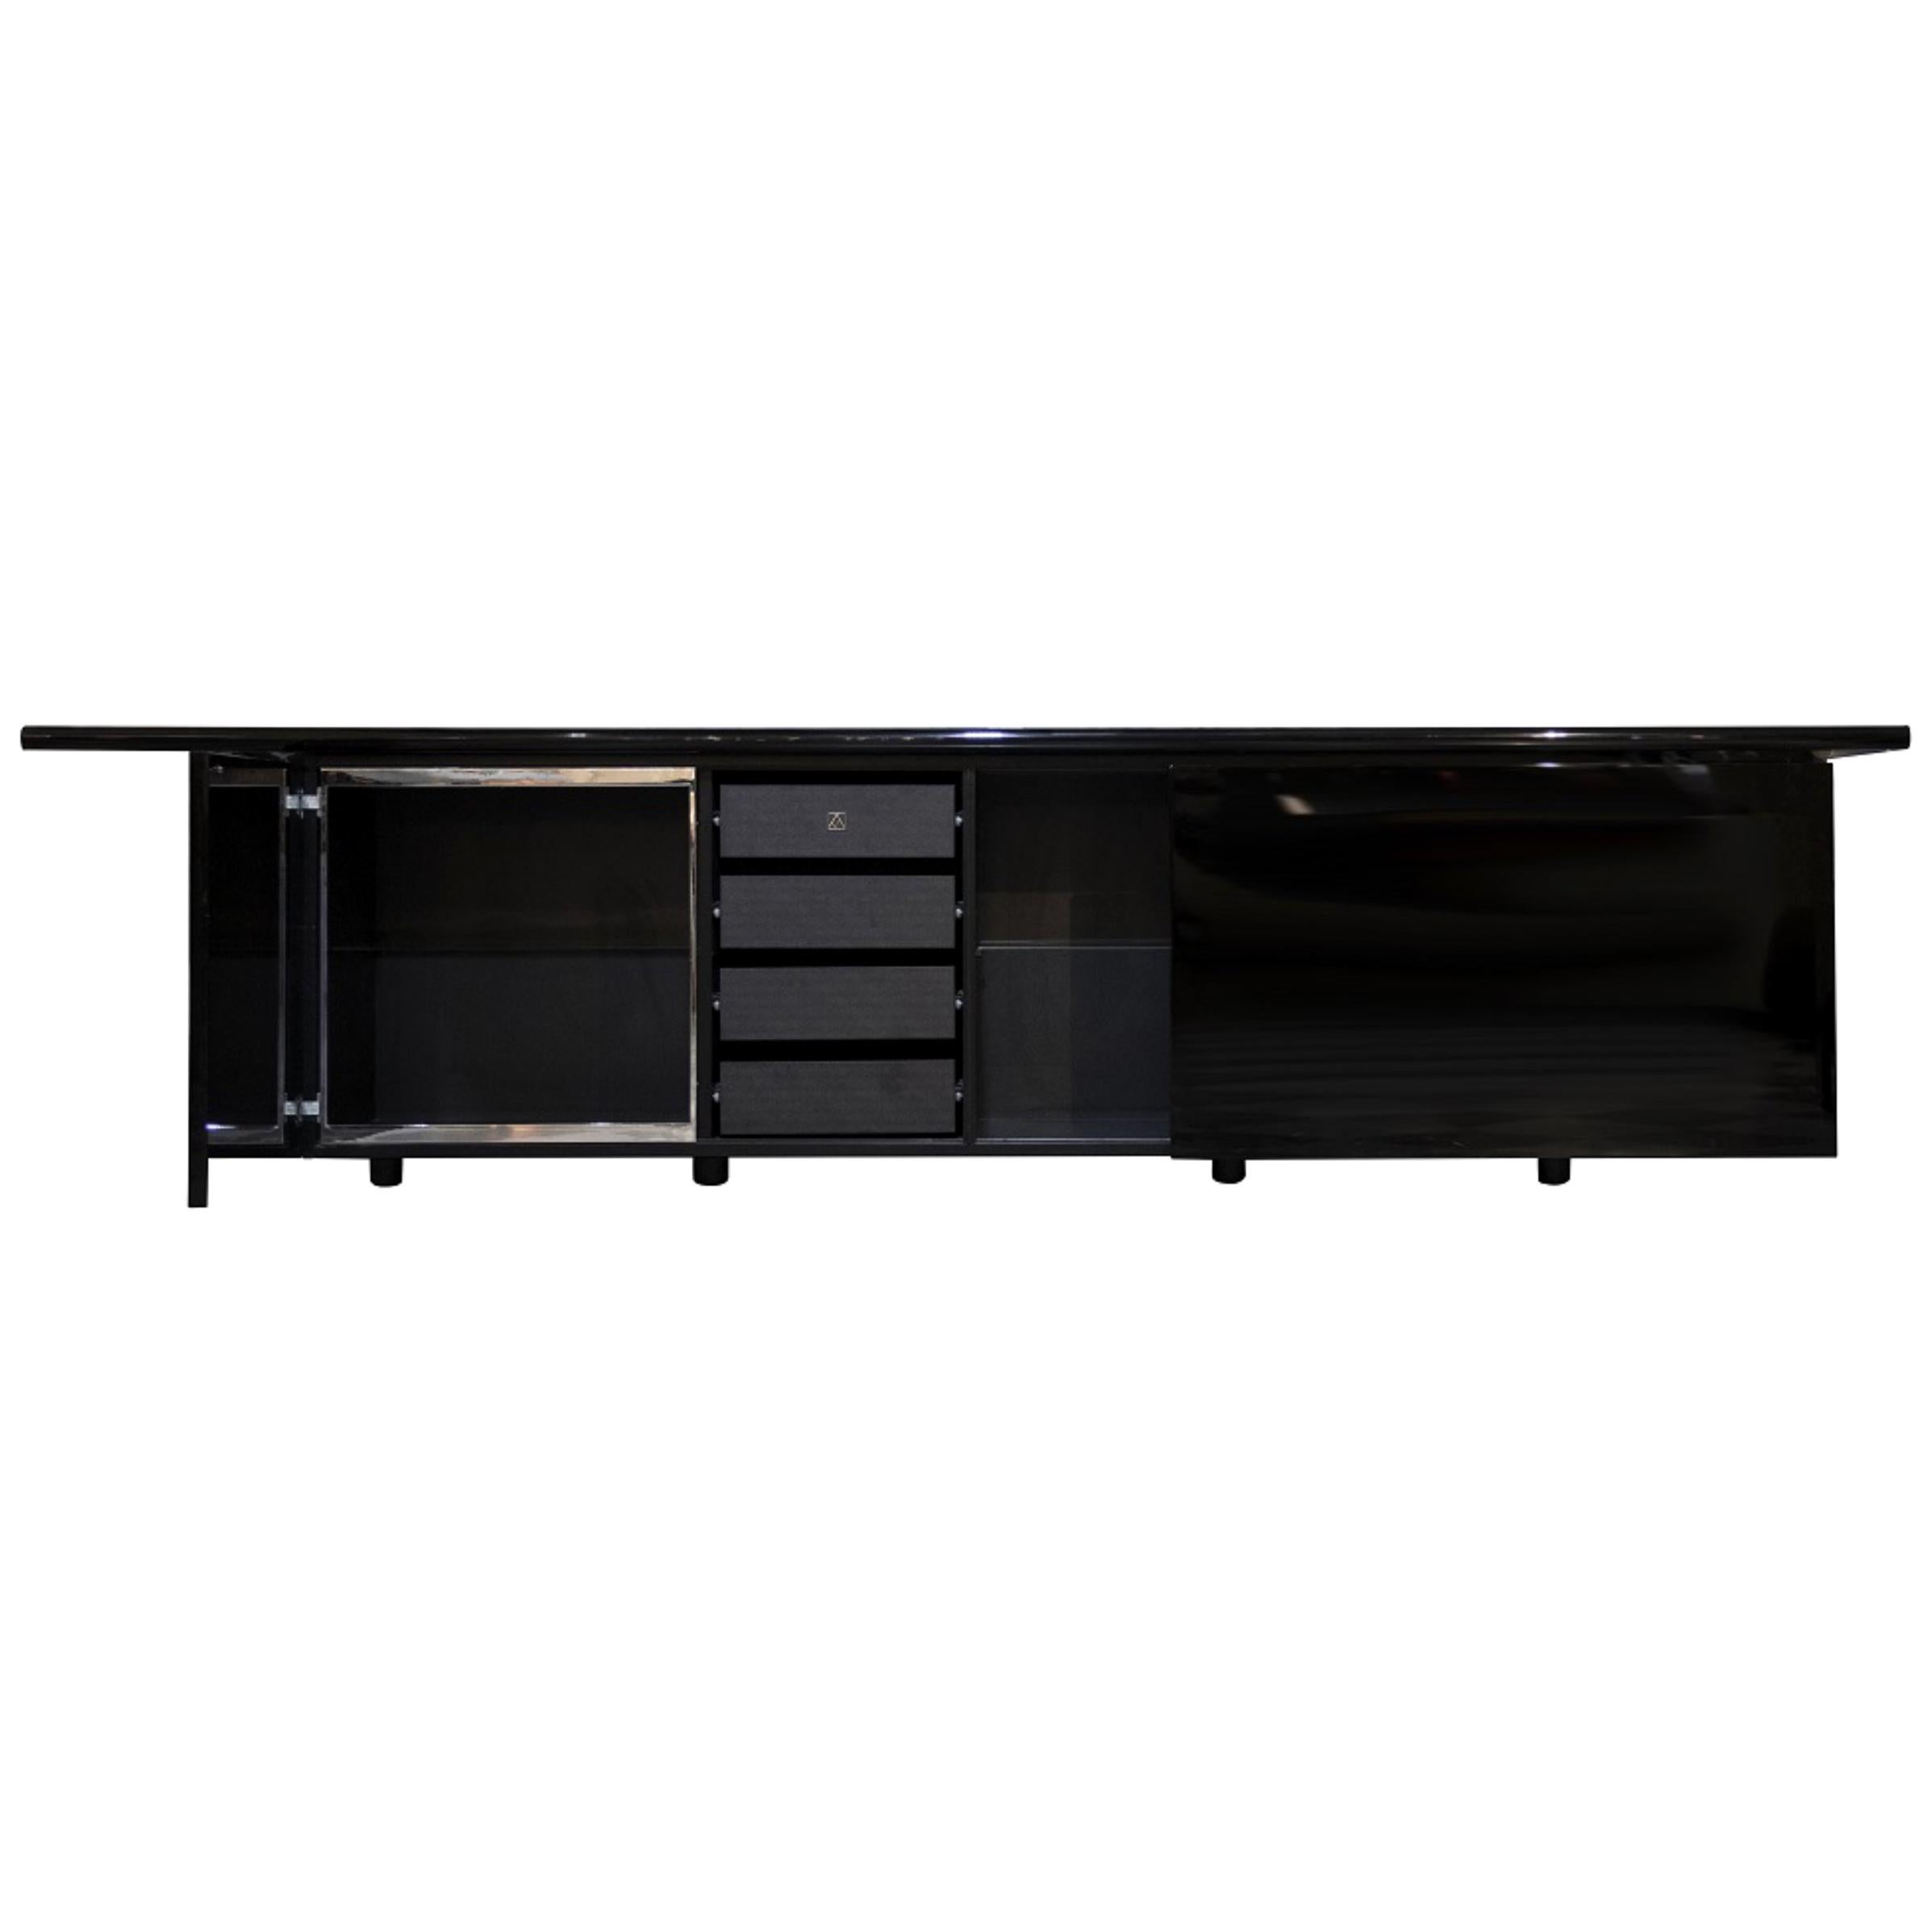 Black Lacquered Sheraton Sideboard by Giotto Stoppino for Acerbis, Italy, 1977